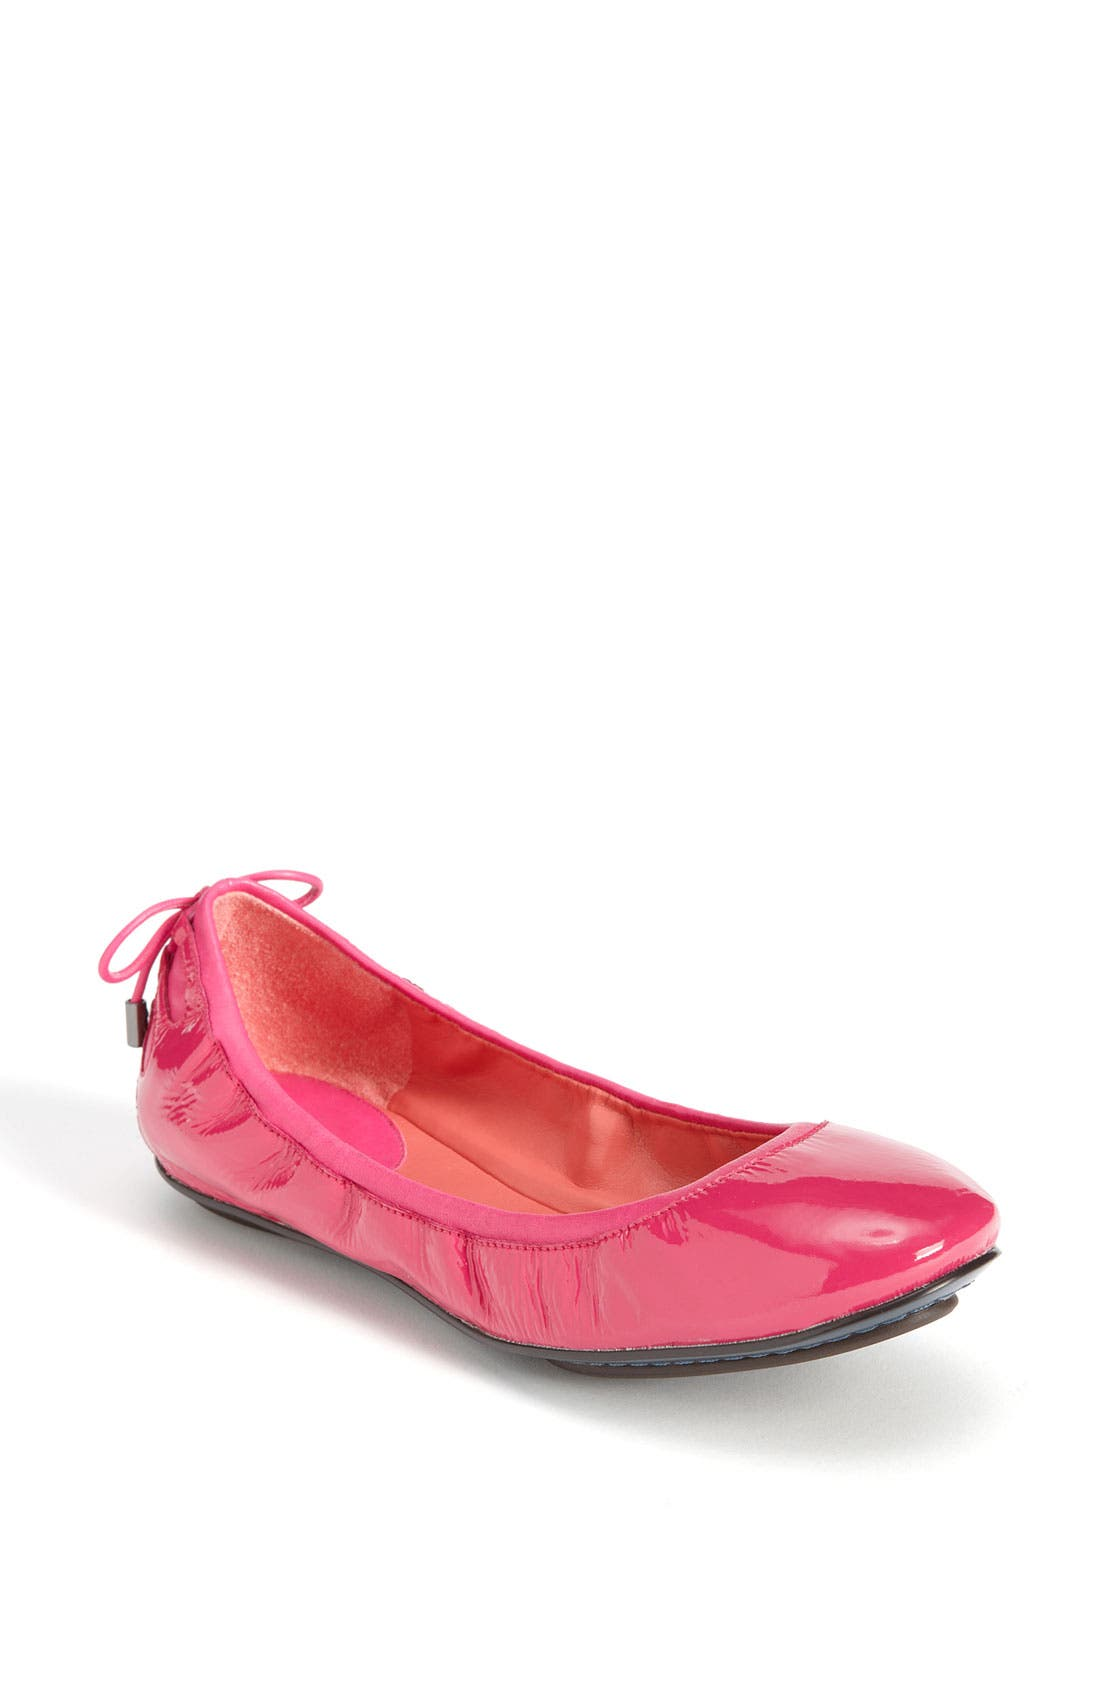 ,                             Maria Sharapova by Cole Haan 'Air Bacara' Flat,                             Main thumbnail 87, color,                             650